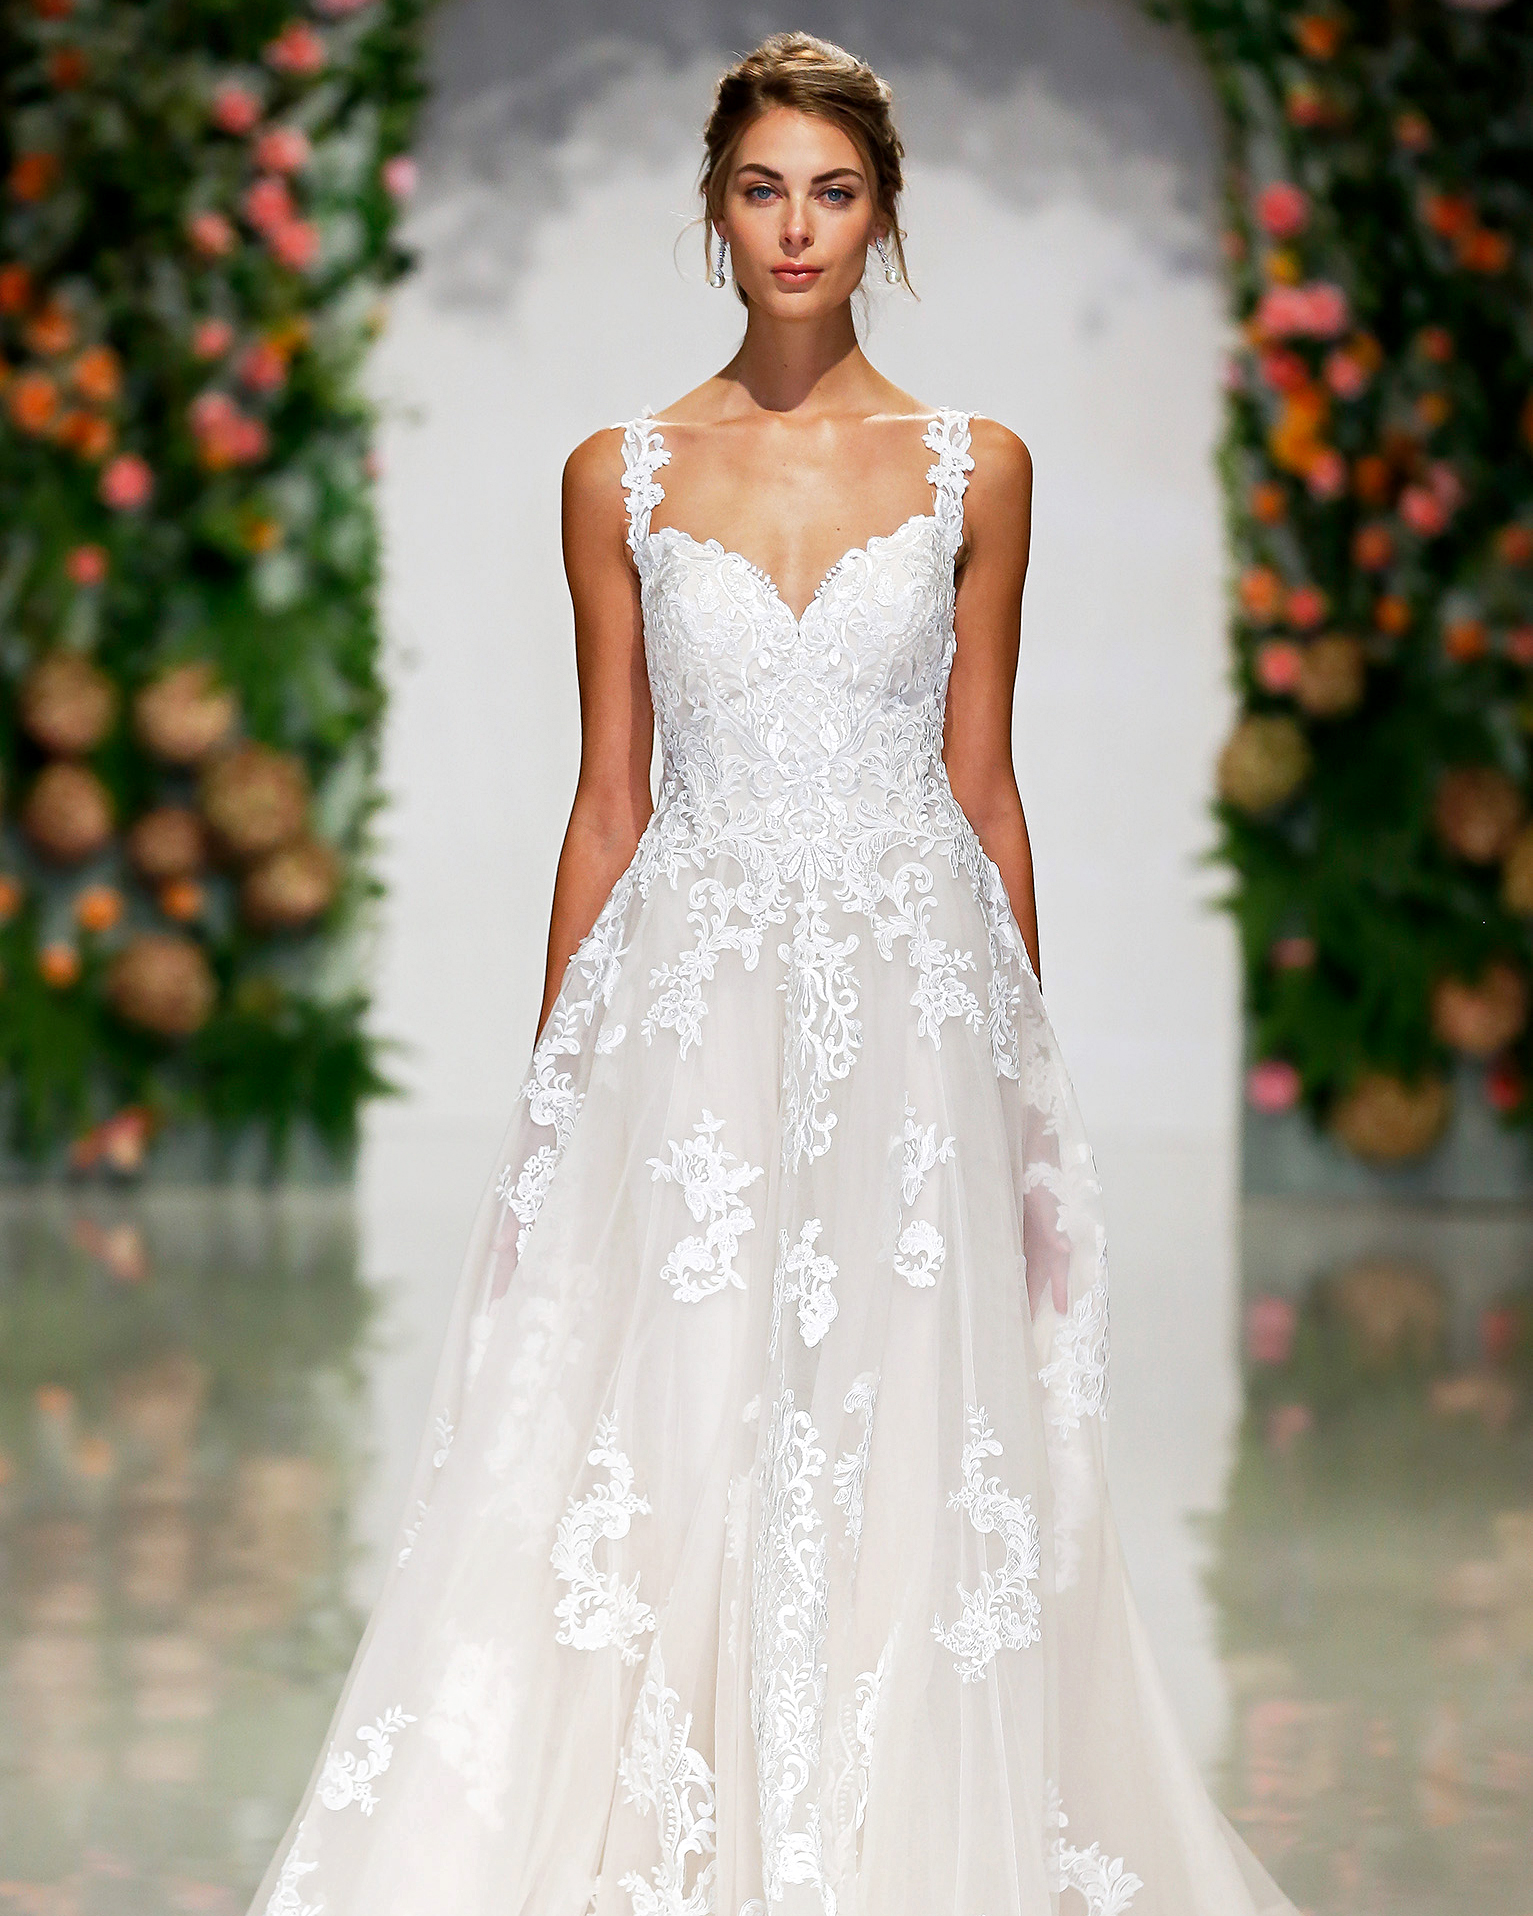 morilee madeline gardner wedding dress sweetheart embroidered a-line